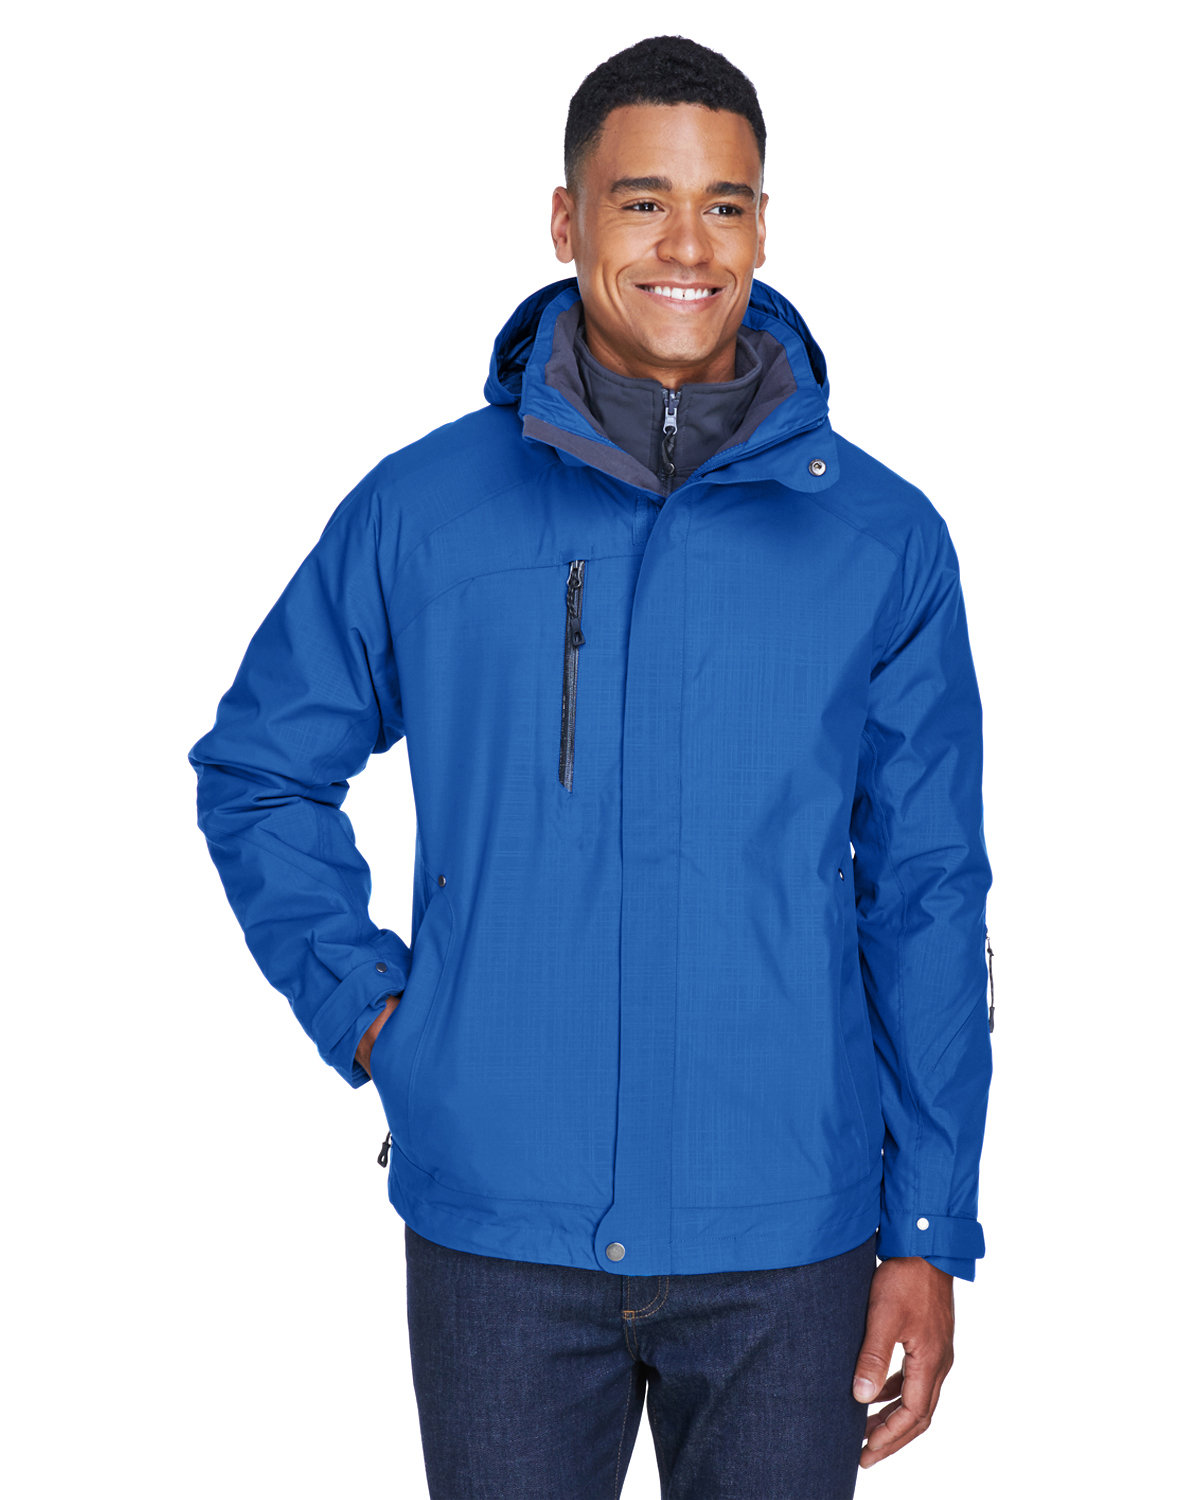 North End Men's Caprice 3-in-1 Jacket with Soft Shell Liner NAUTICAL BLUE